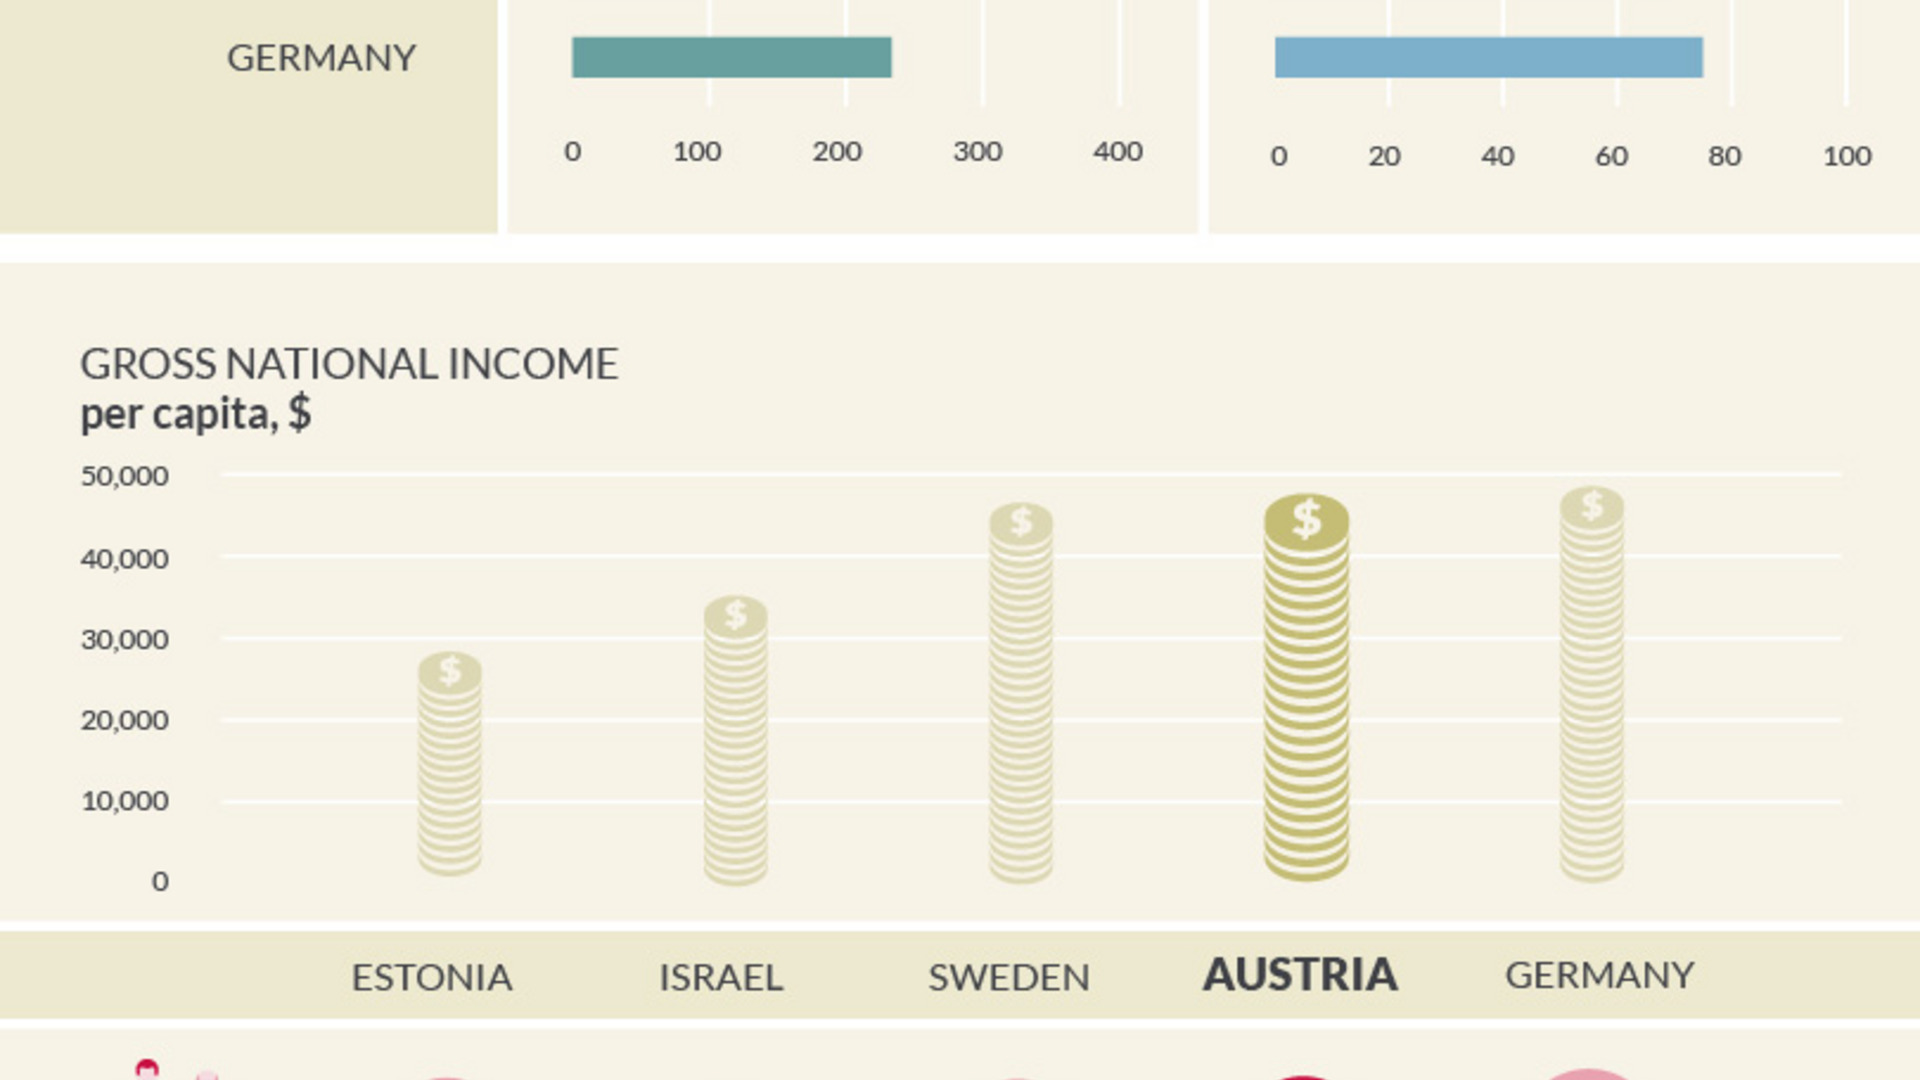 Key figures for Austria in comparison to Estonia, Israel, Germany and Sweden.